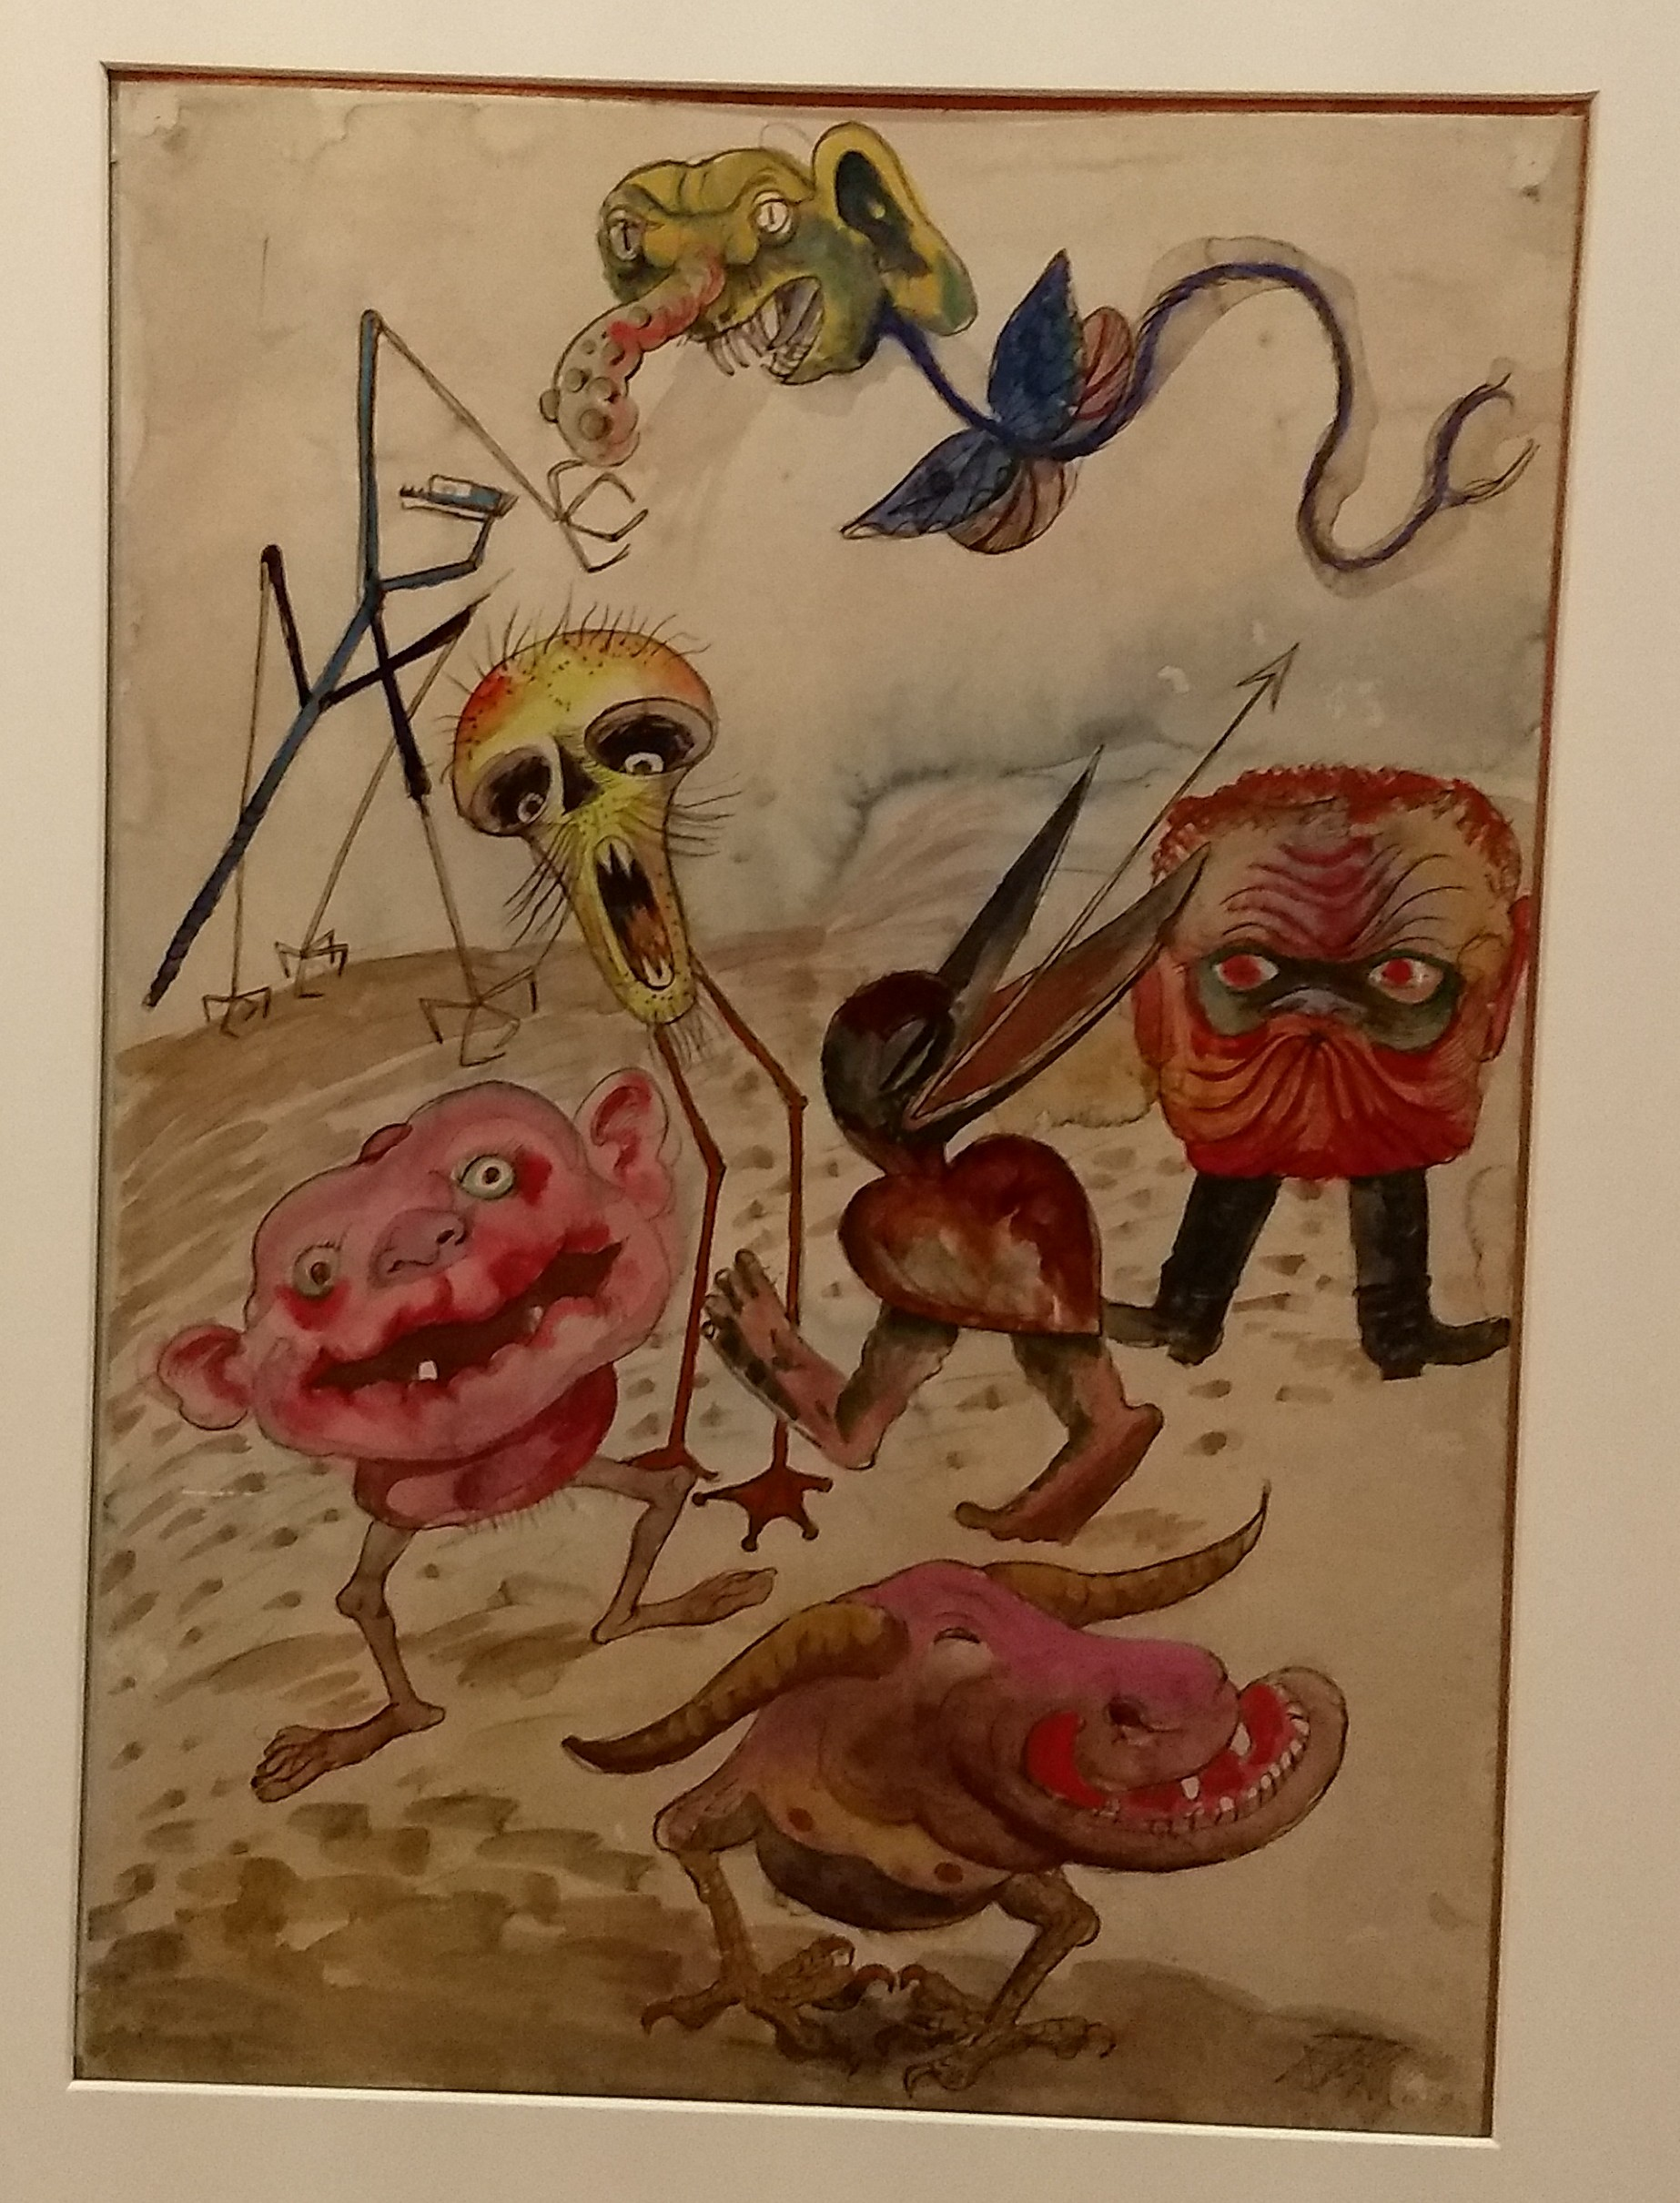 Colourful monsters with misshapen, oversized heads, spindly legs, and no arms or bodies